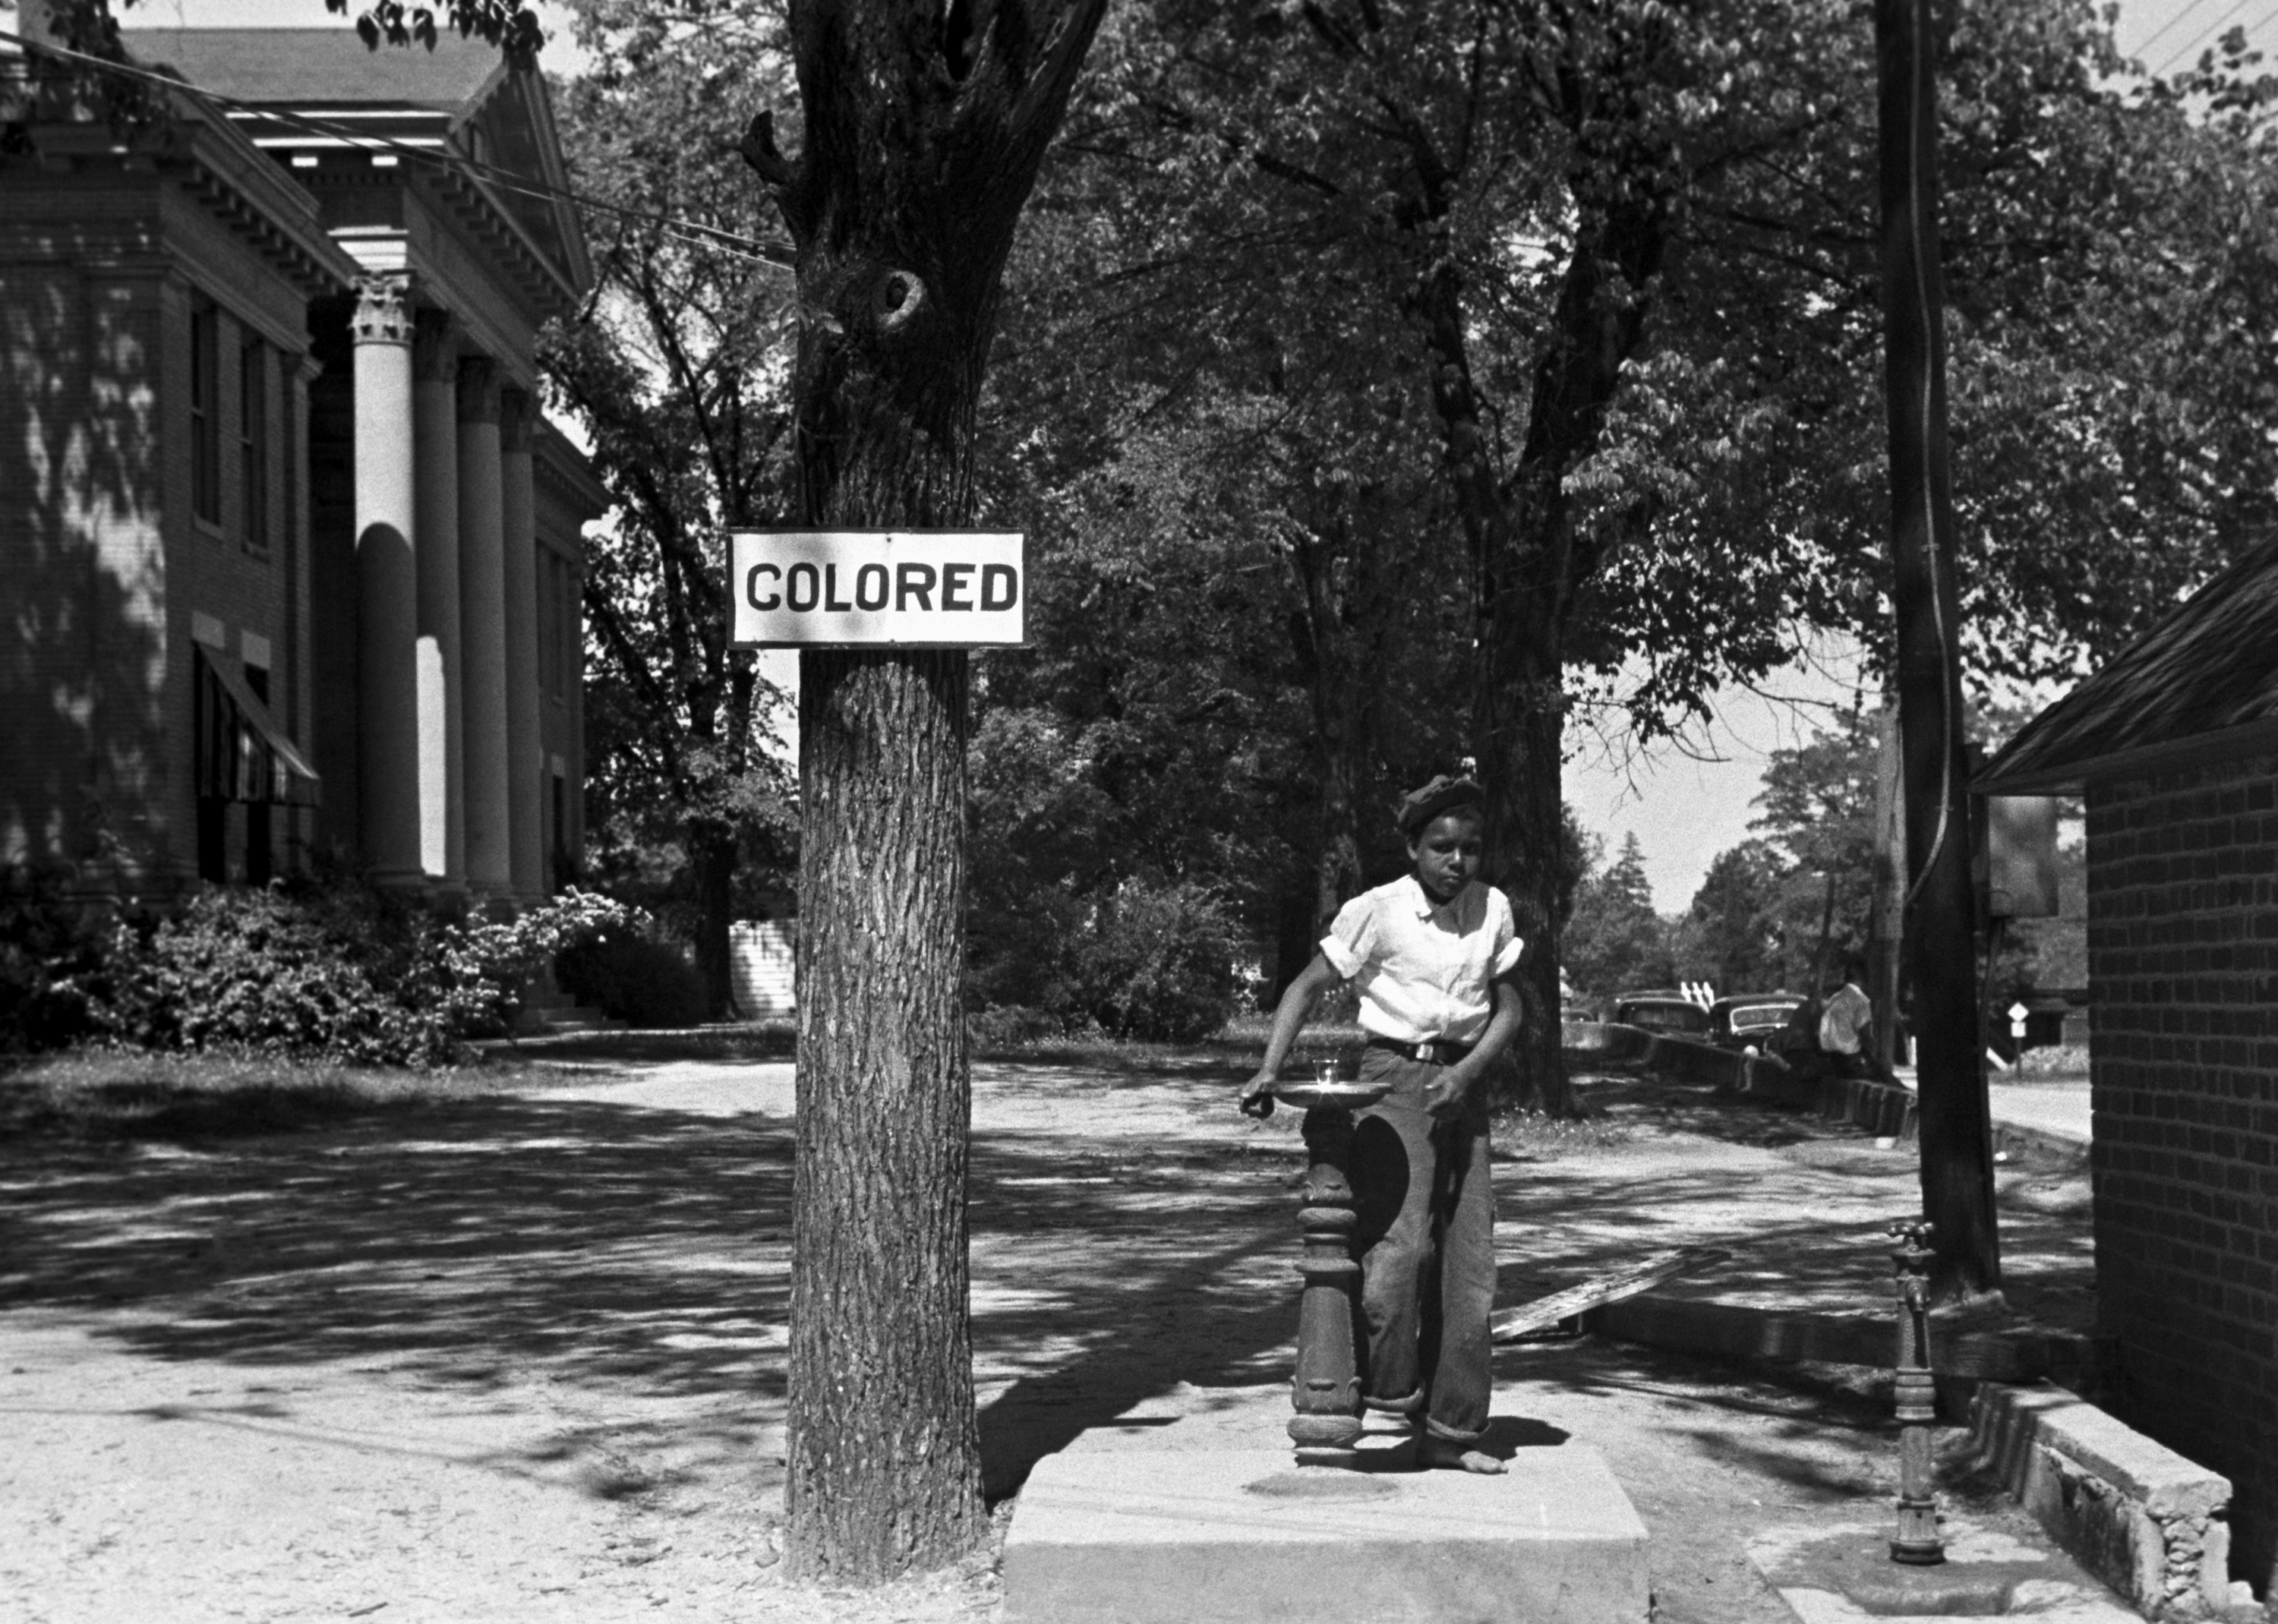 discrimination an african american child at a segregated drinking fountain on a courthouse lawn north carolina us 1938